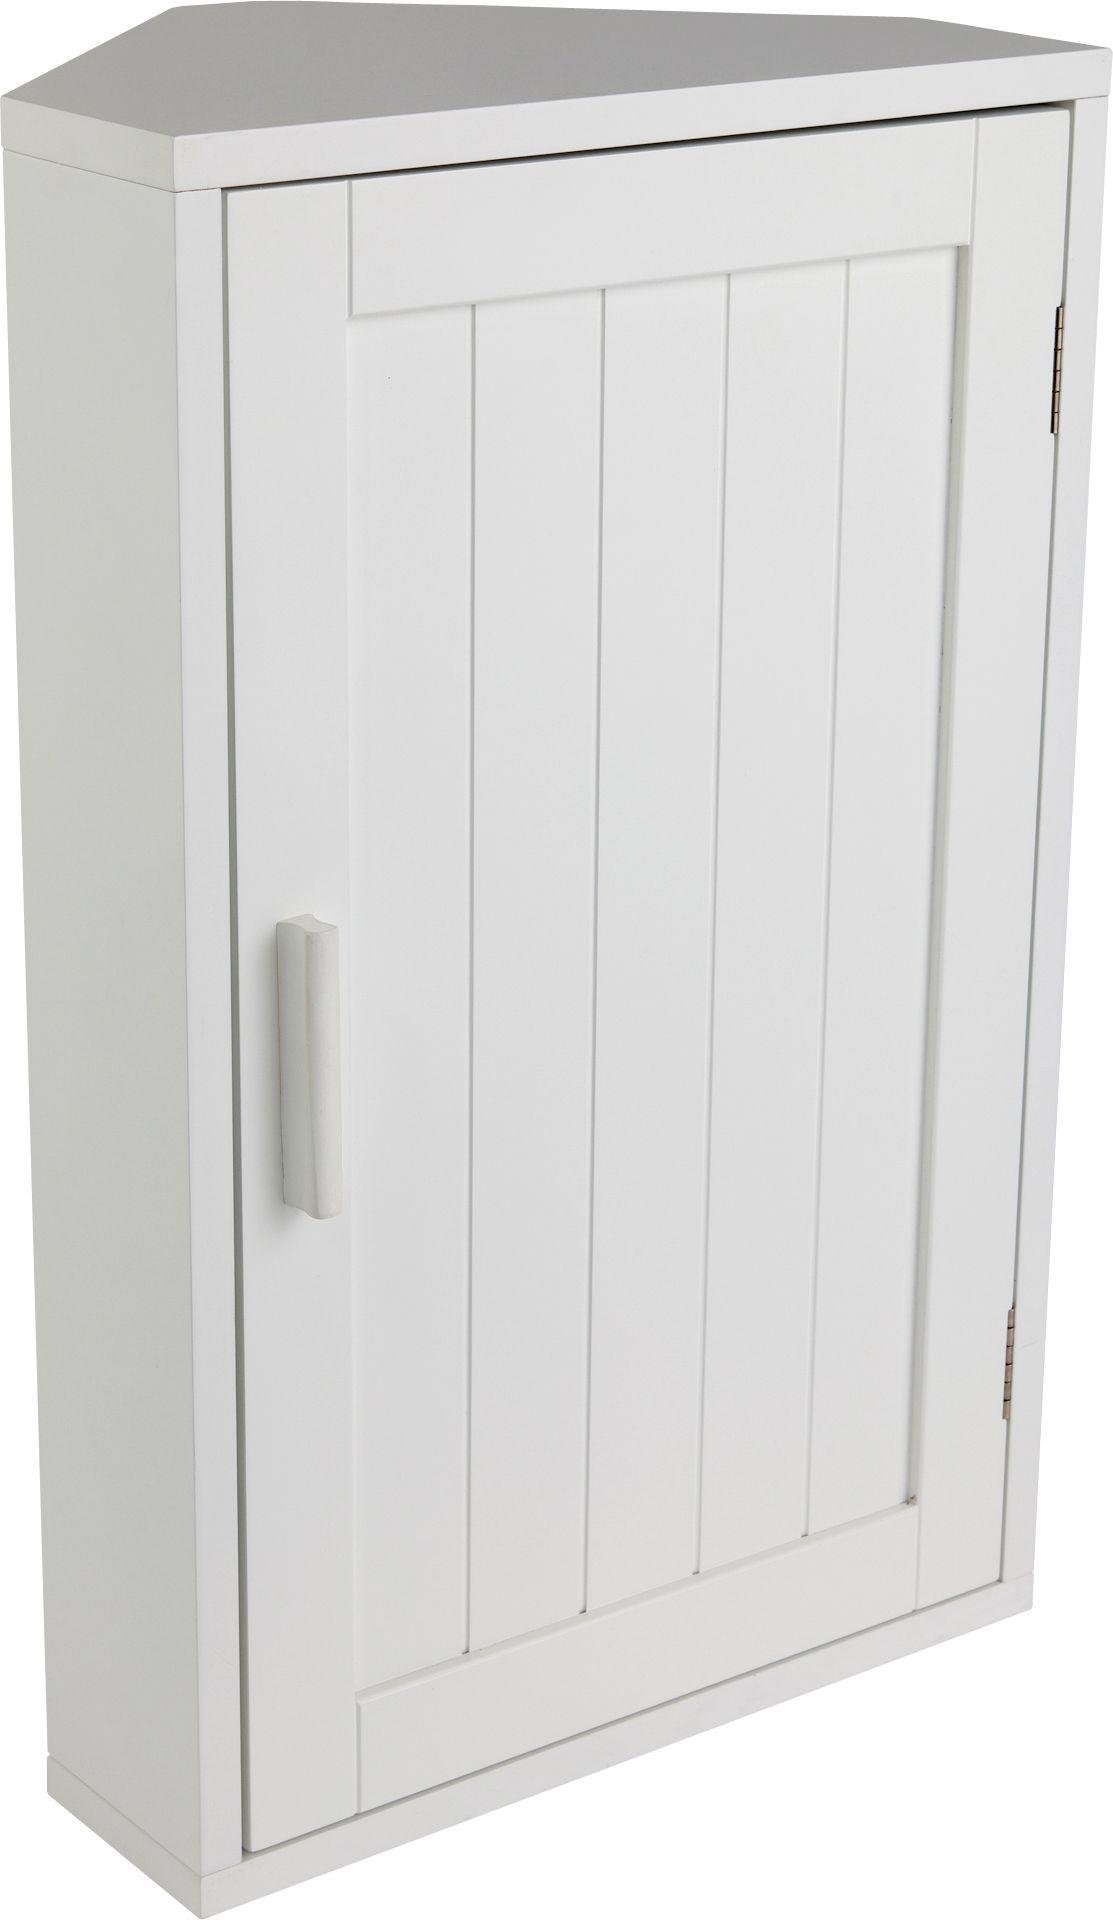 Buy HOME Wooden Corner Bathroom Cabinet White at Argoscouk